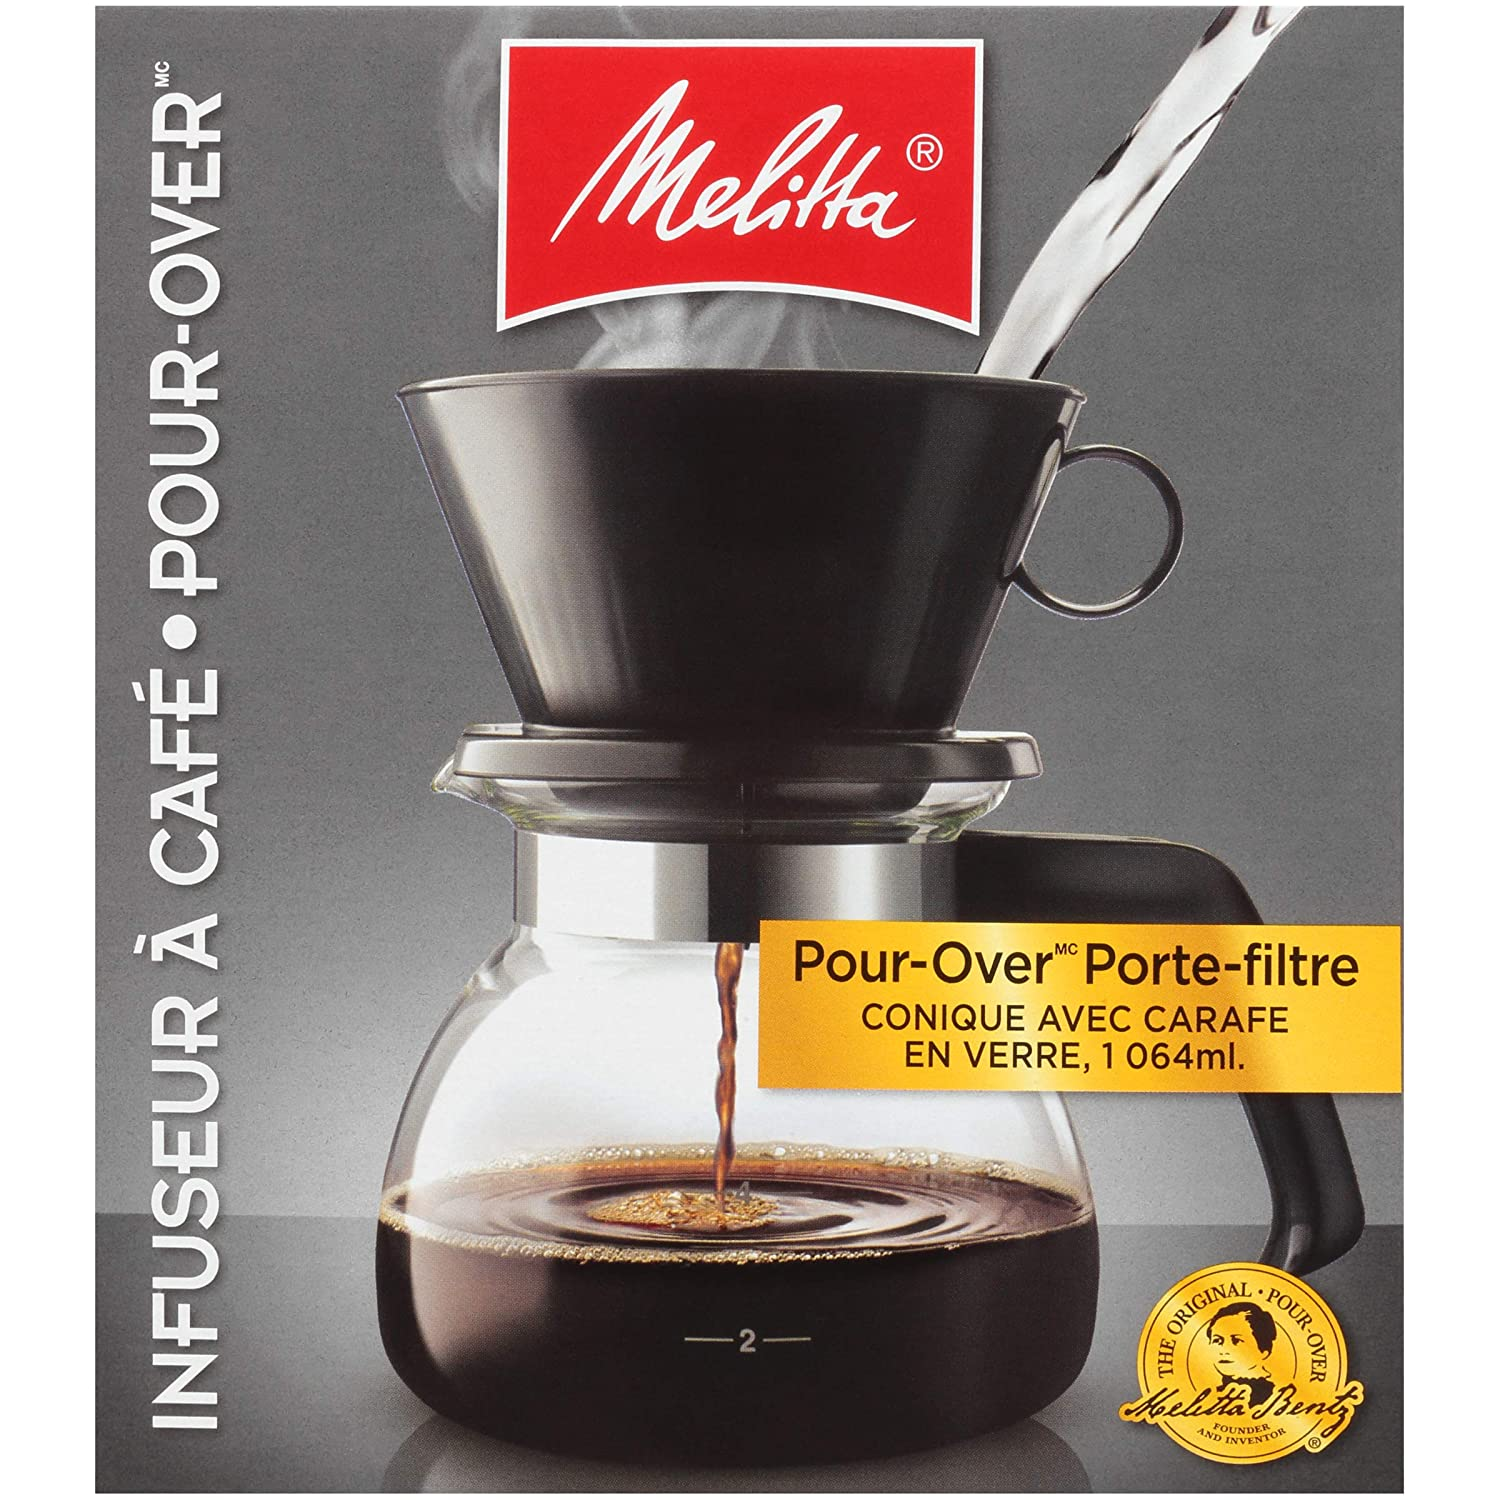 Melitta Pour-Over Coffee Brewer w/ Glass Carafe, 6 Cups (6 ...